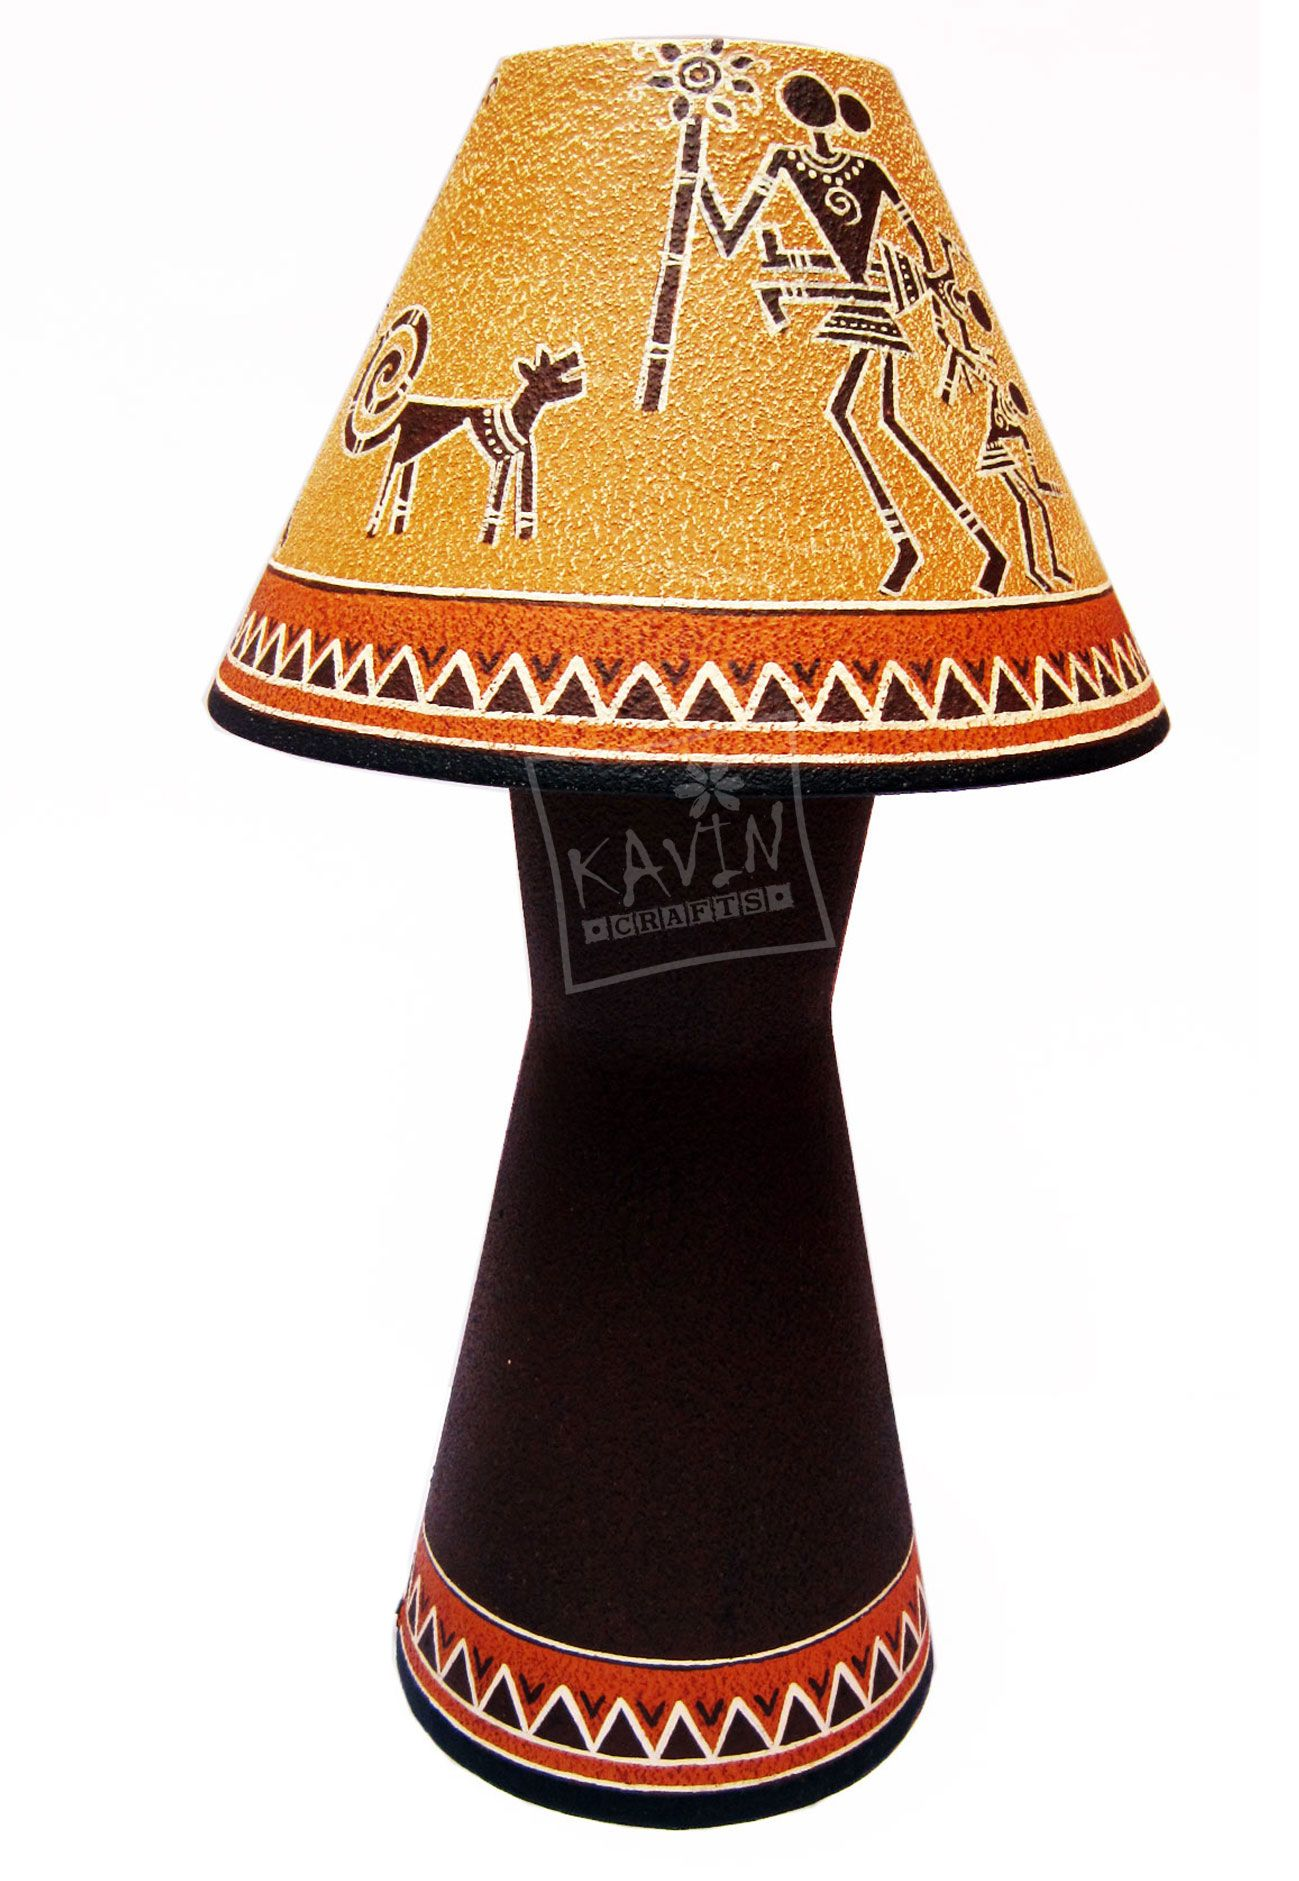 Handmade lampshades decorated with indian tribal traditional art handmade lampshades decorated with indian tribal traditional art works created by kavin crafts pondicherry india mozeypictures Image collections